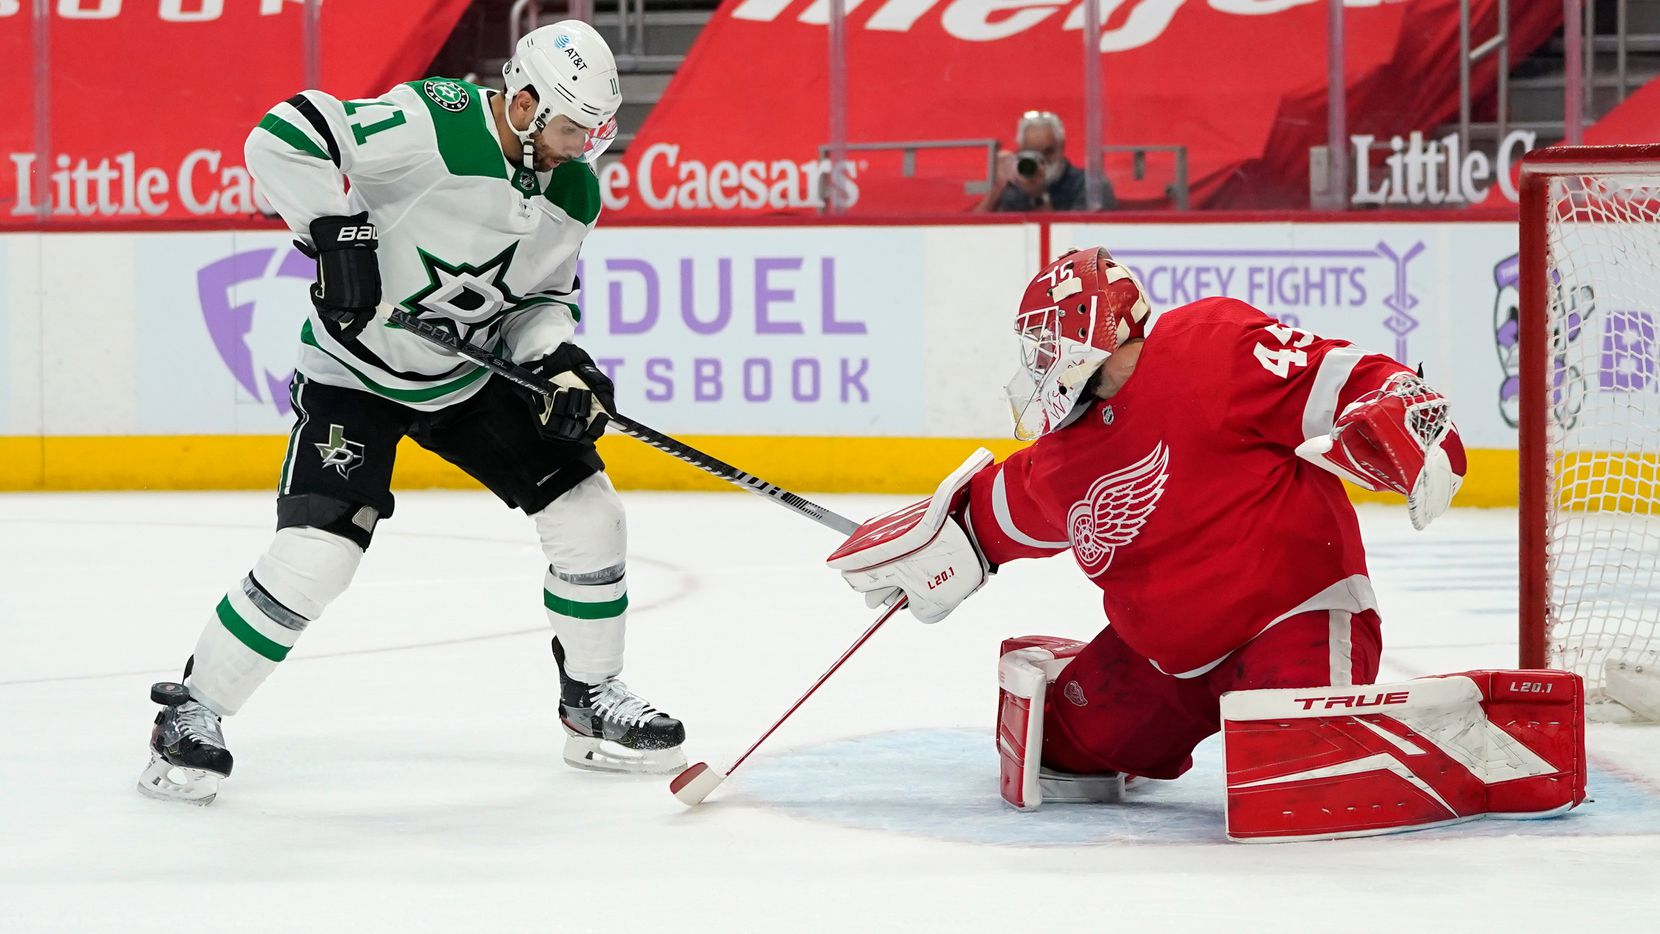 Detroit Red Wings goaltender Jonathan Bernier (45) stops a Dallas Stars center Andrew Cogliano (11) shot in the first period of an NHL hockey game Saturday, April 24, 2021, in Detroit. (AP Photo/Paul Sancya)